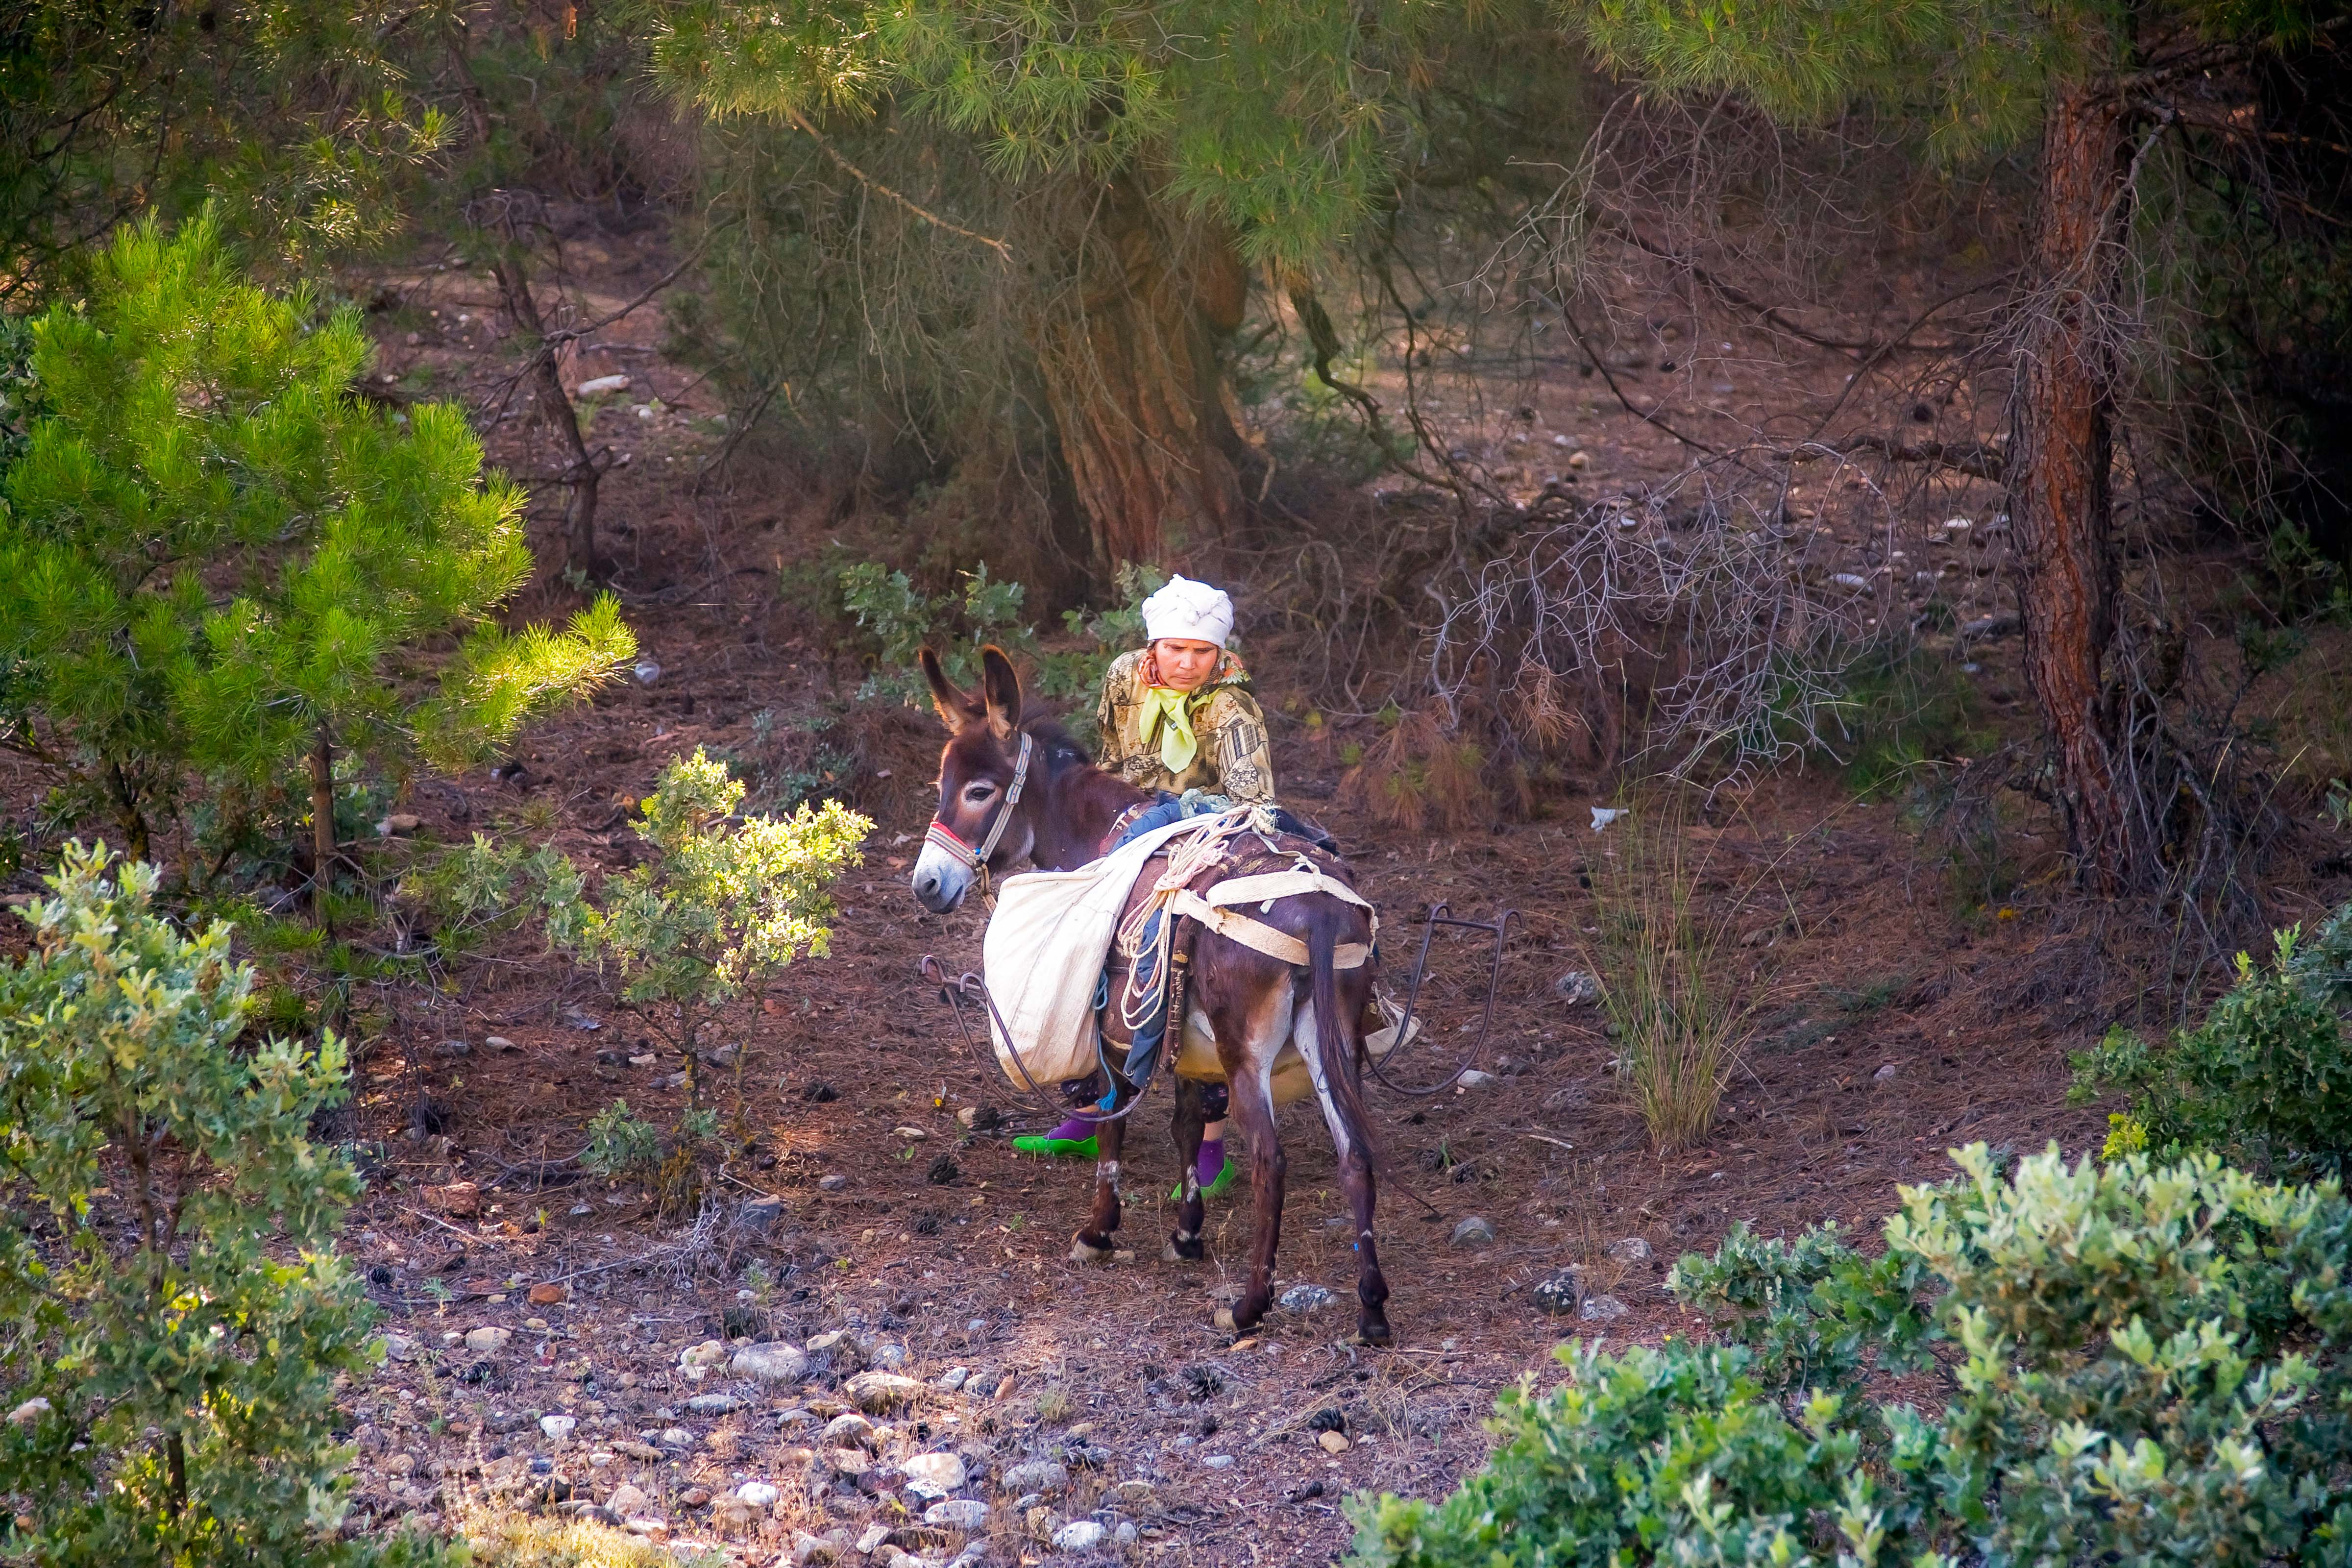 Turkey, Kutahya Prov, Gypsy Woman With Donkey, 2010, IMG 9880